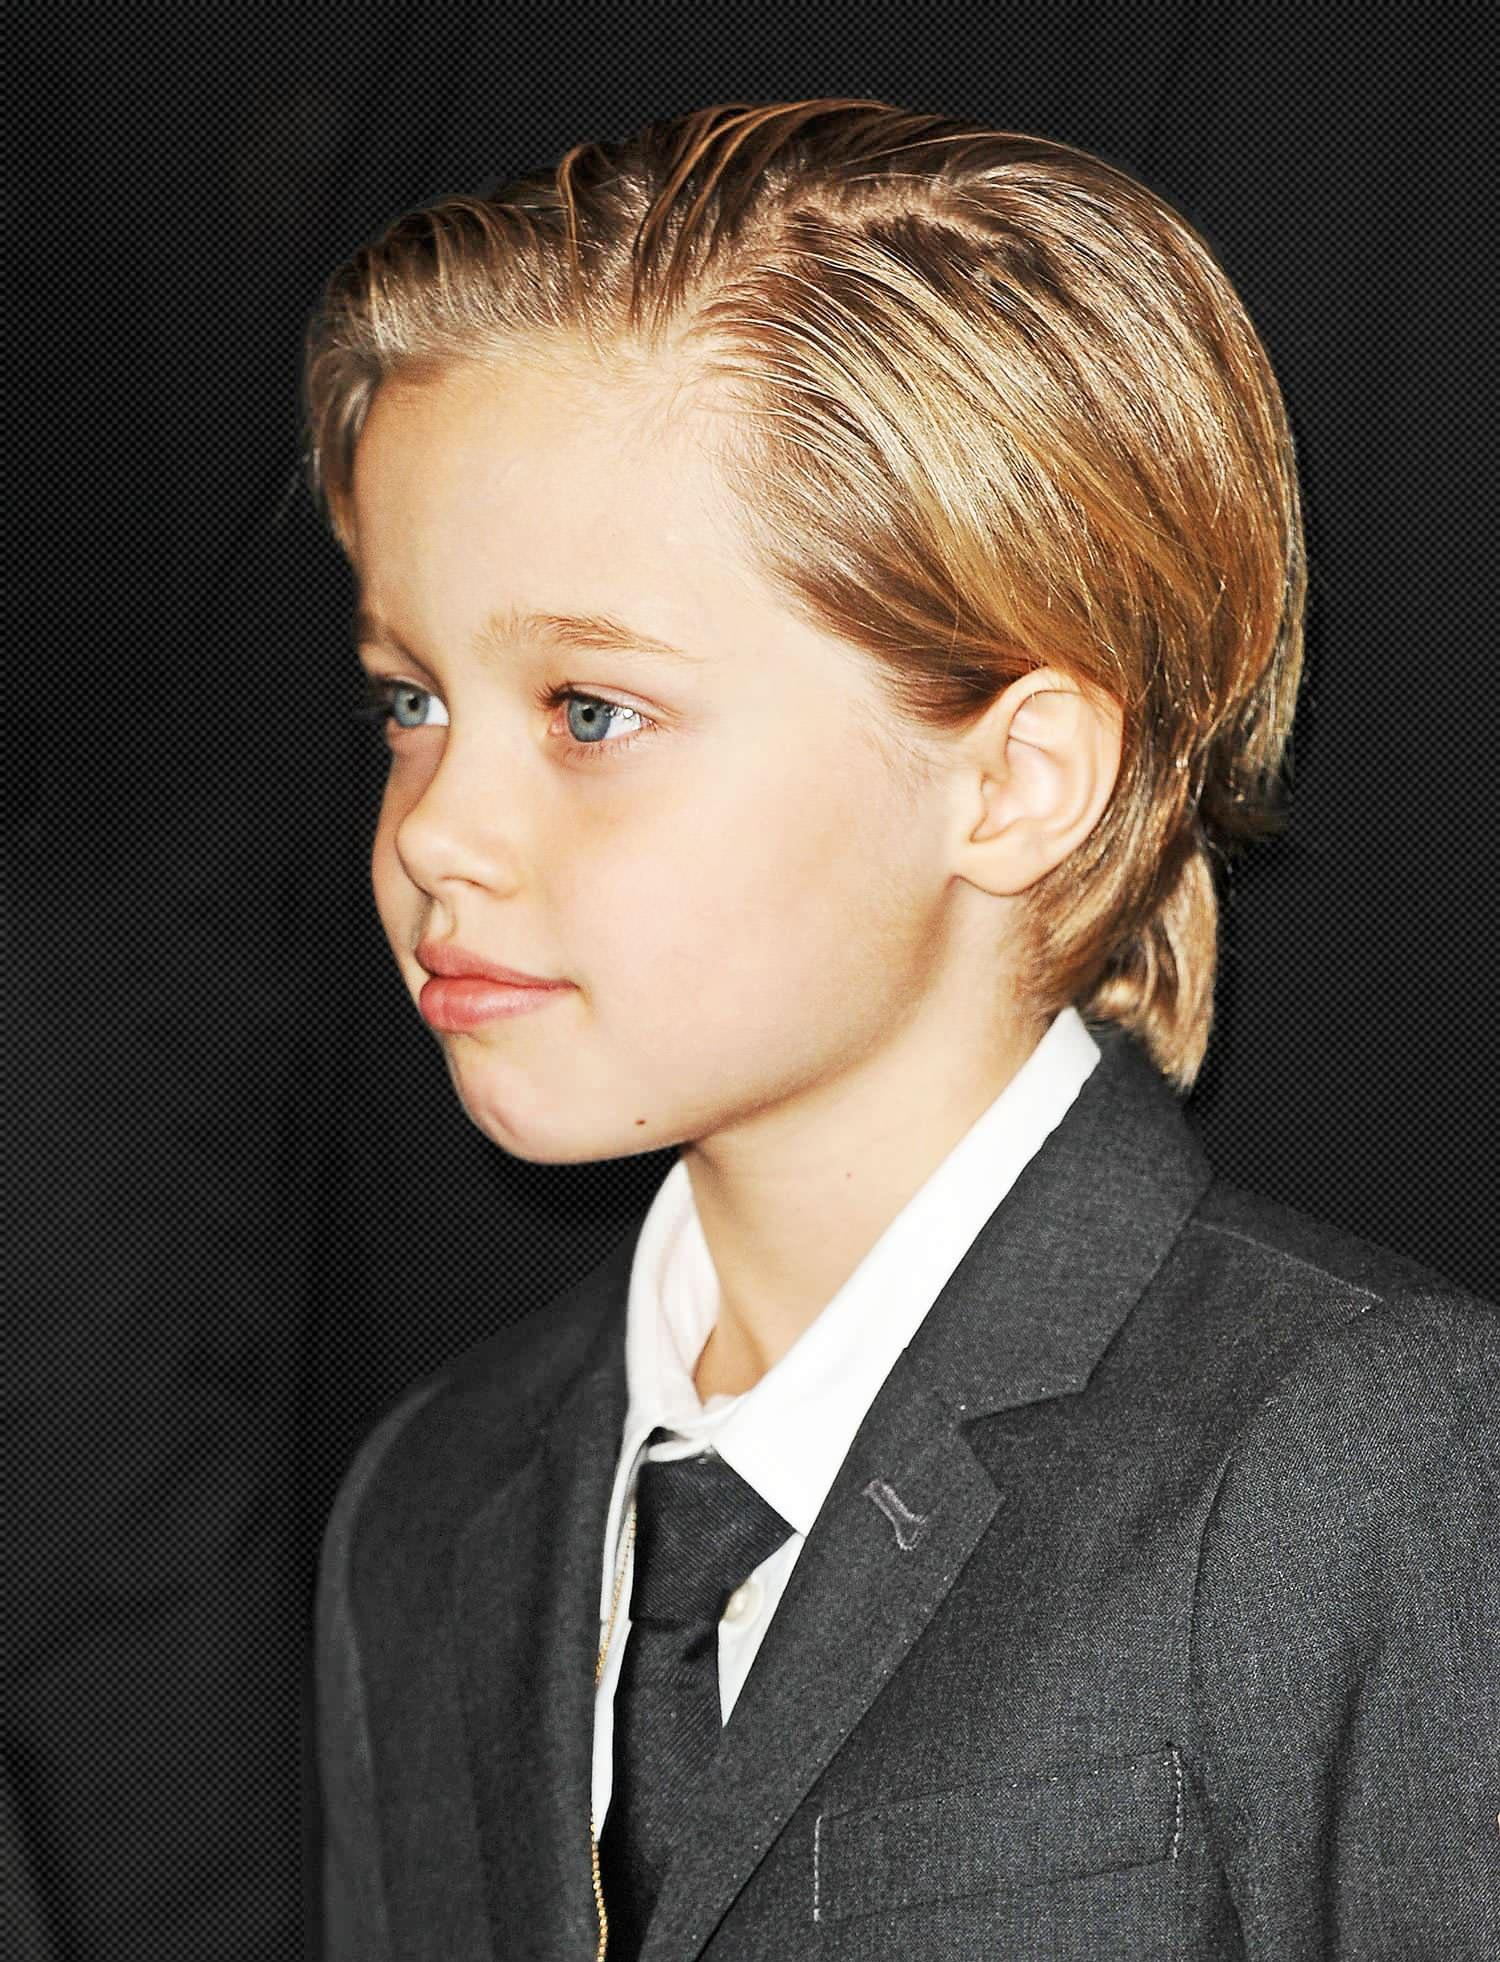 shiloh jolie pitt steals the spotlight in a suit. Black Bedroom Furniture Sets. Home Design Ideas